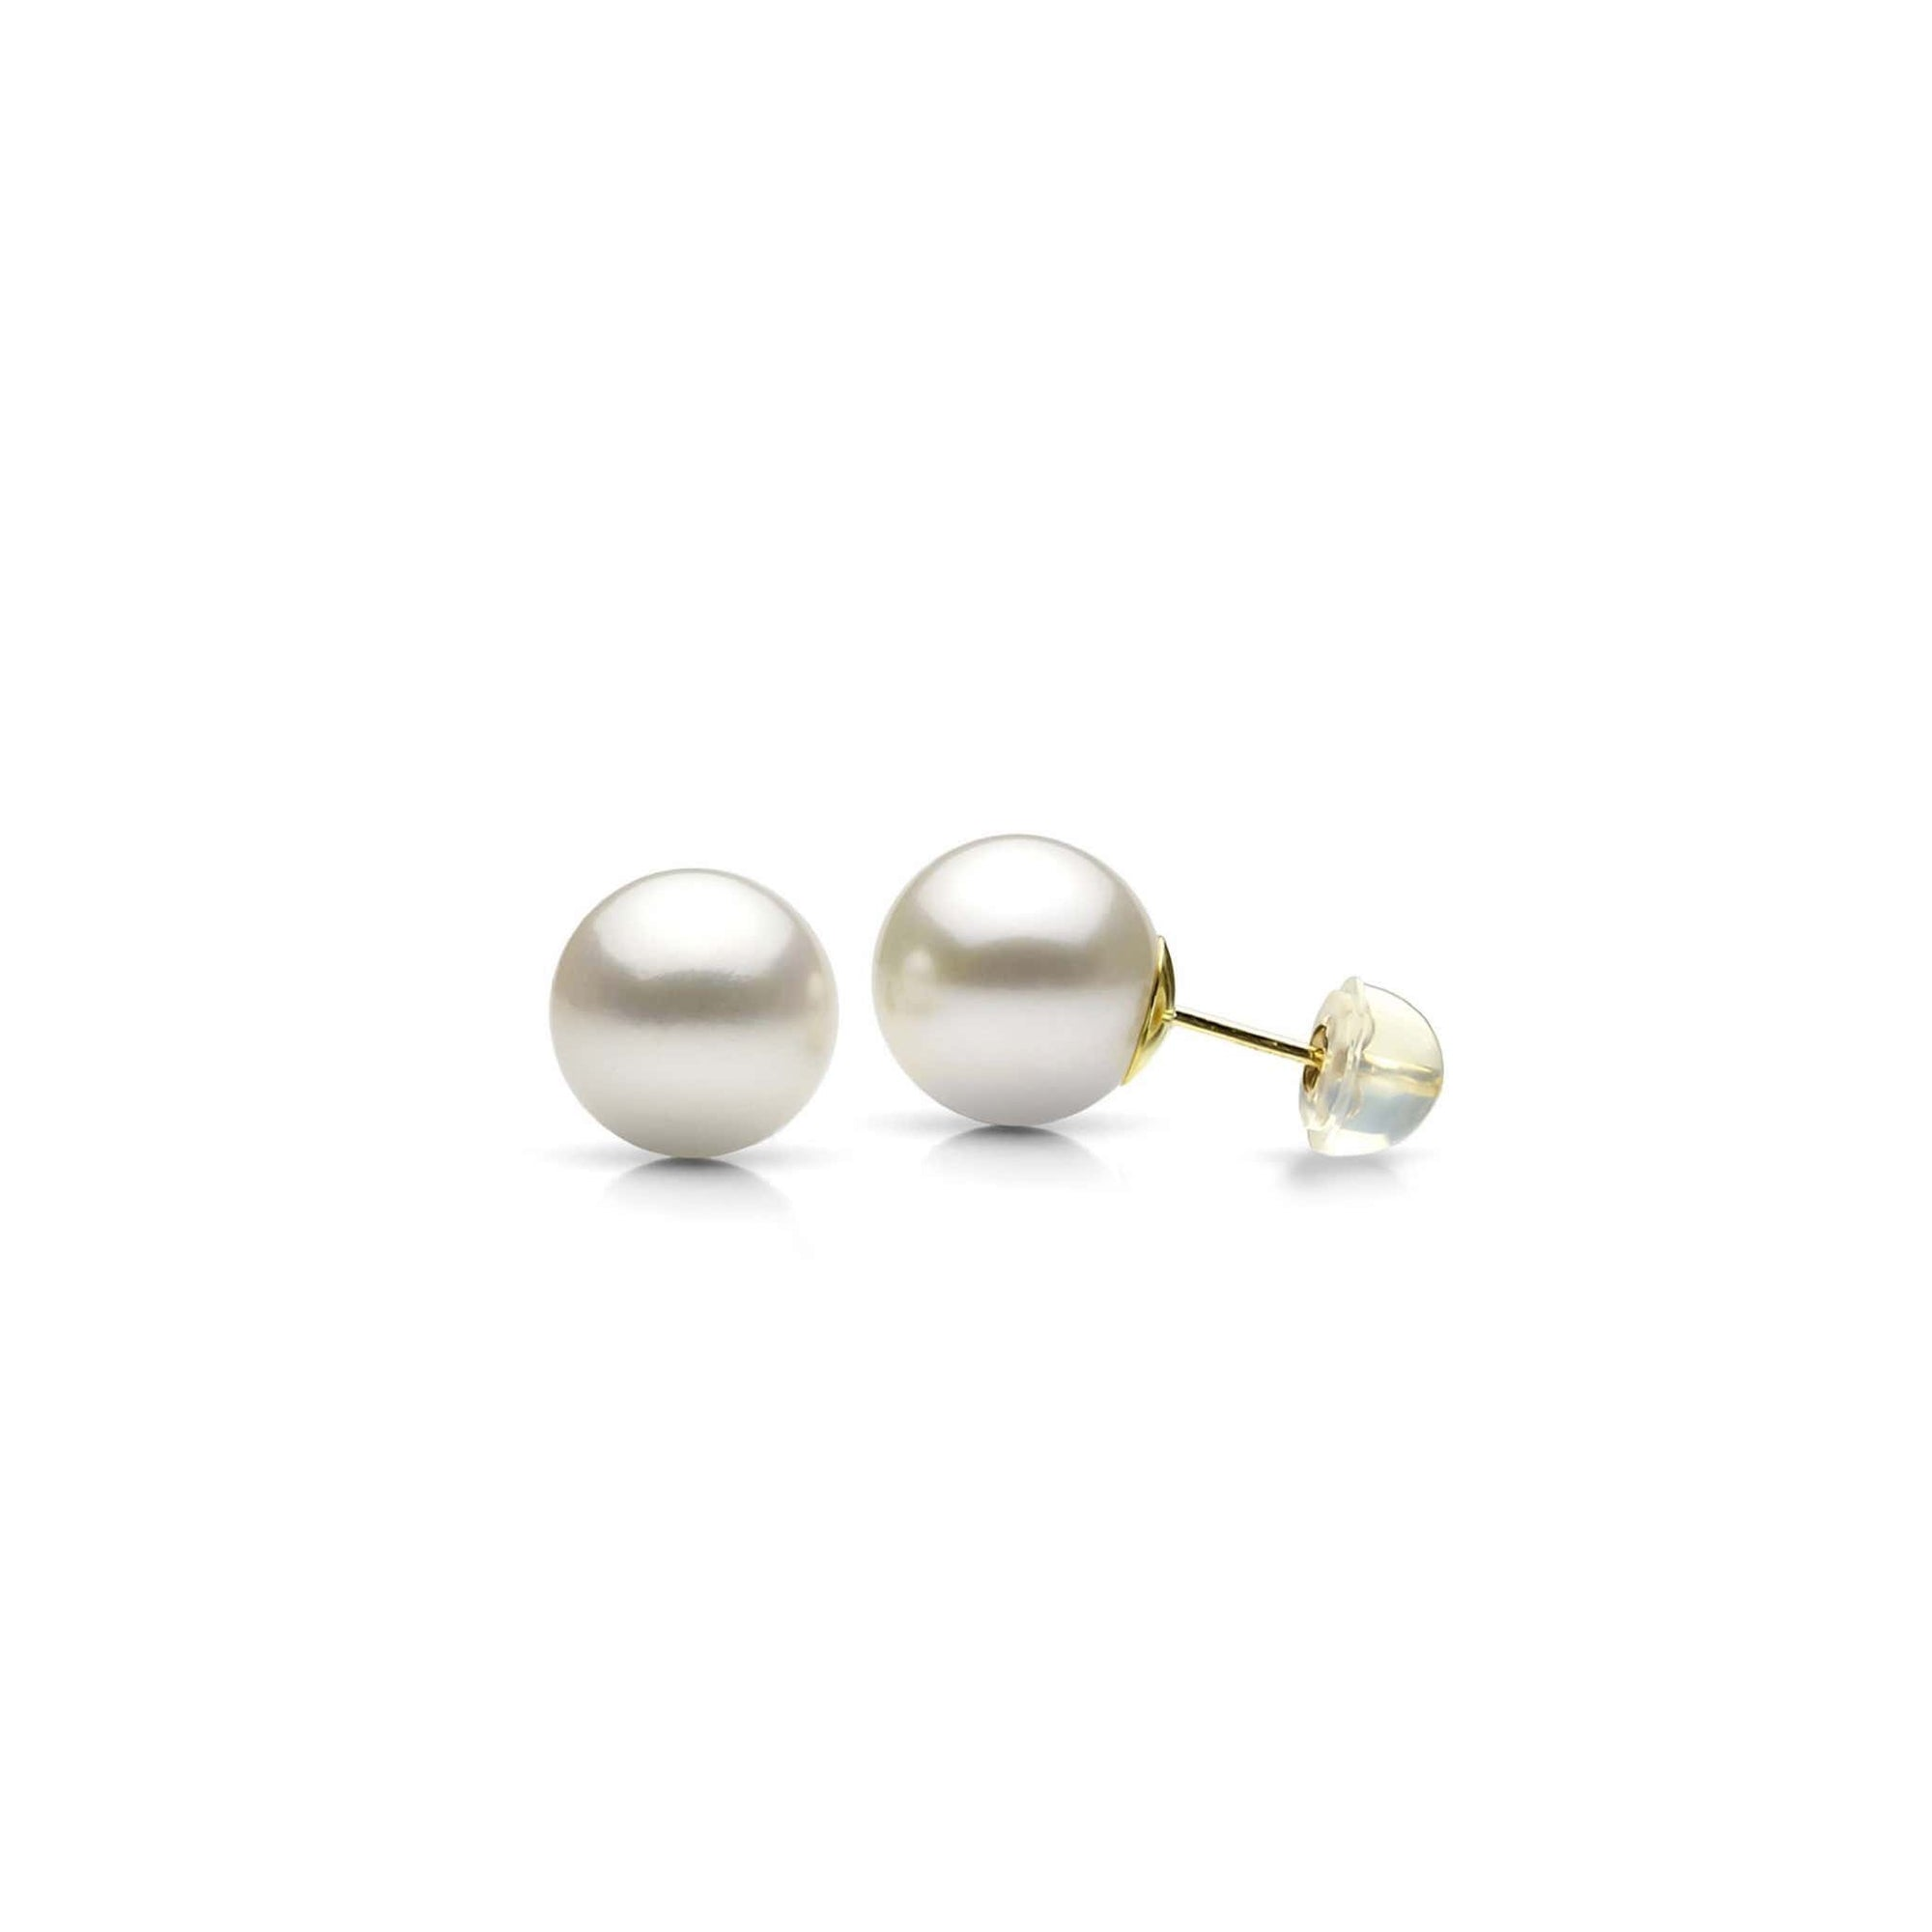 14K Yellow Gold Freshwater Cultured Pearl Stud Earrings at Arman's Jewellers